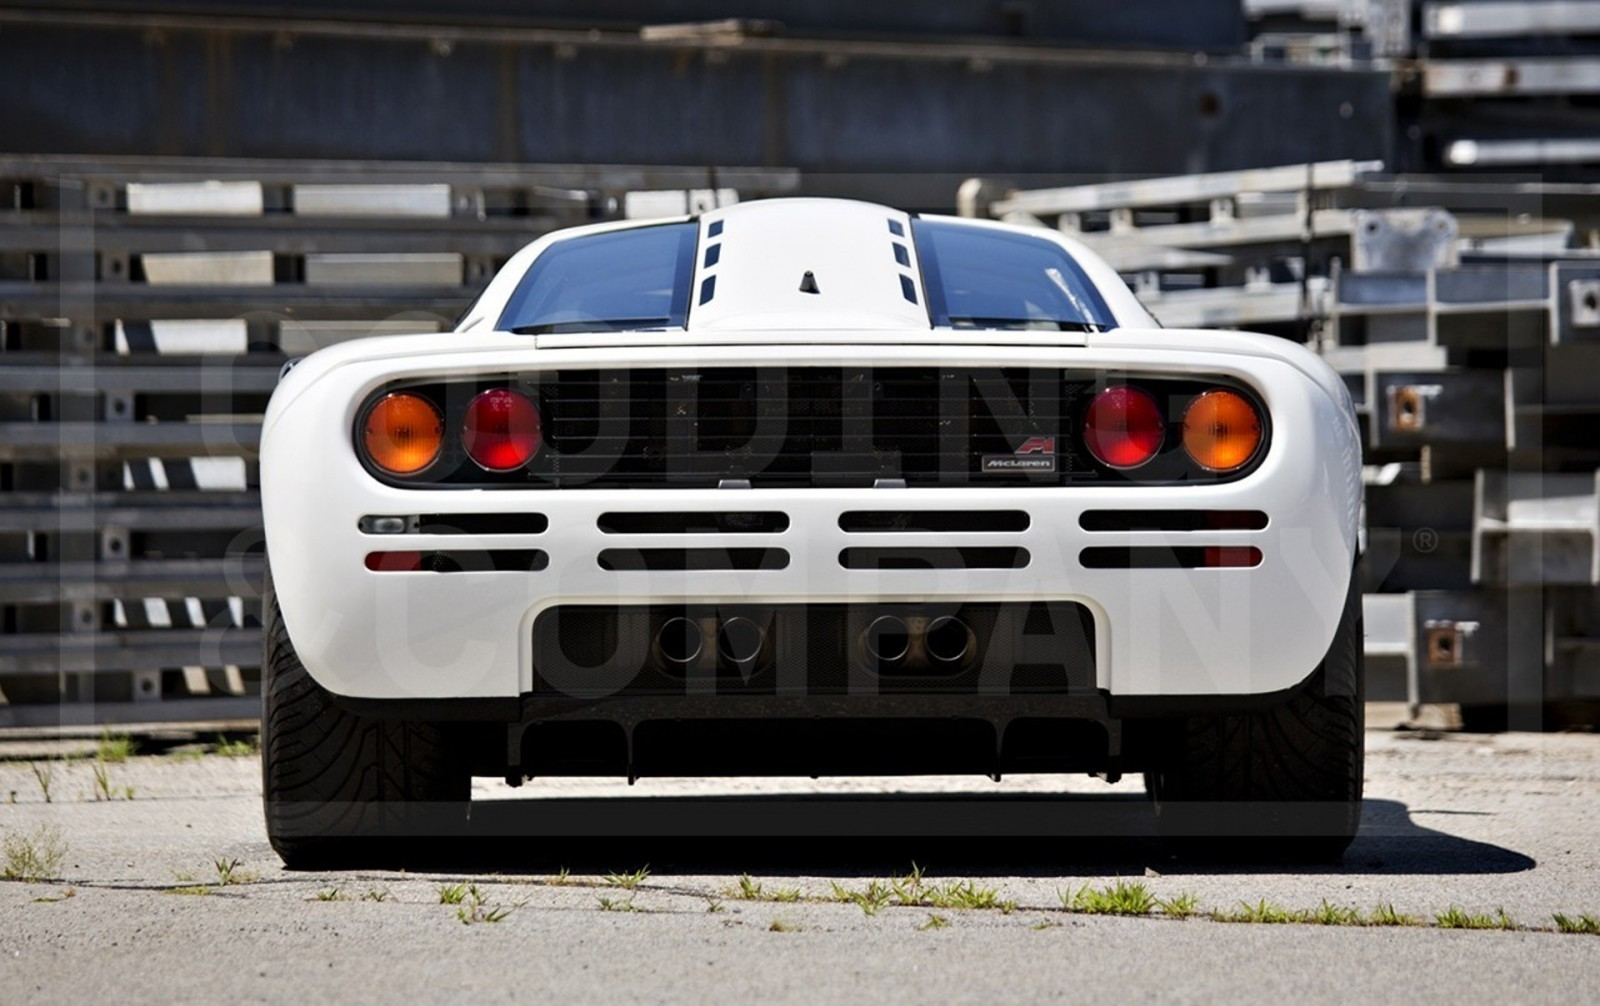 Gooding Pebble Beach 2014 Preview - 1995 McLaren F1 - The Only White F1 Ever Made = $12Mil+ 9